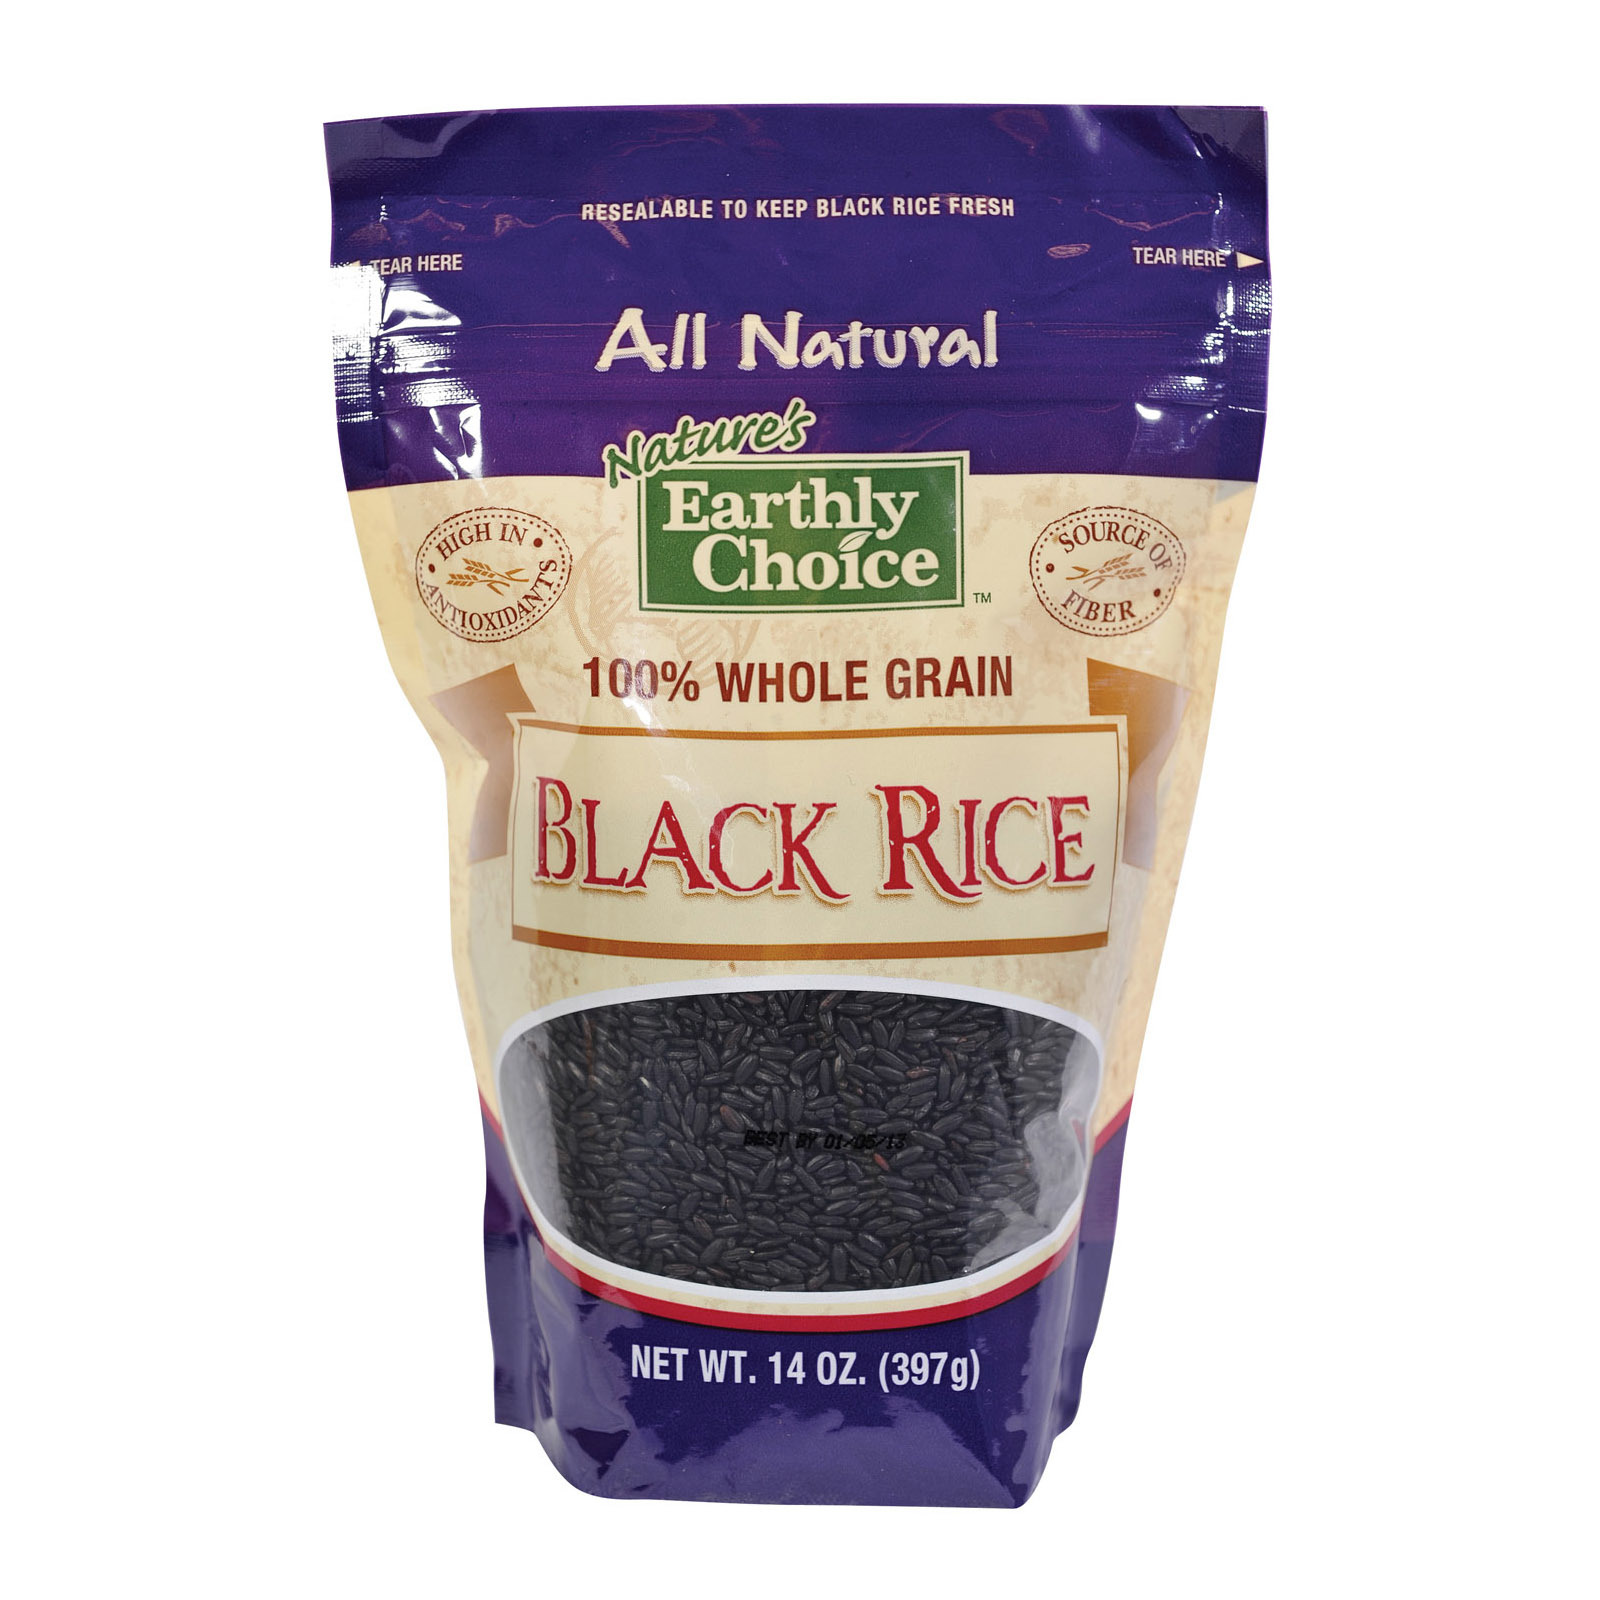 Nature's Earthly Choice Black Rice - Case of 6 - 14 oz.